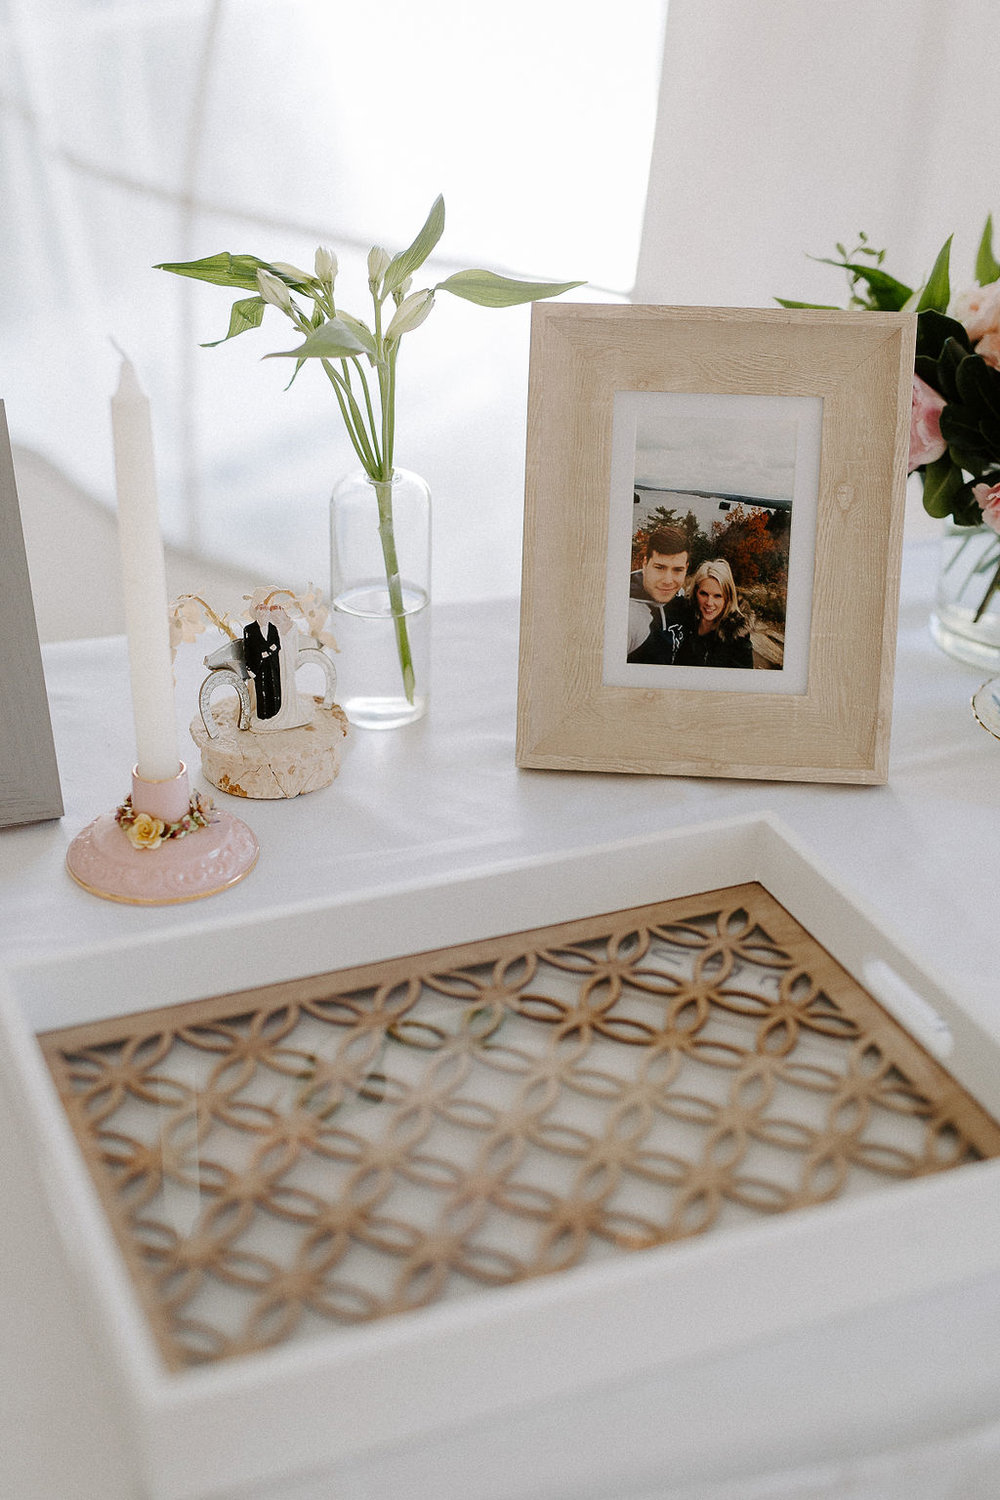 Guest Book Table Decor - Whimsical Wedding Decor Ideas